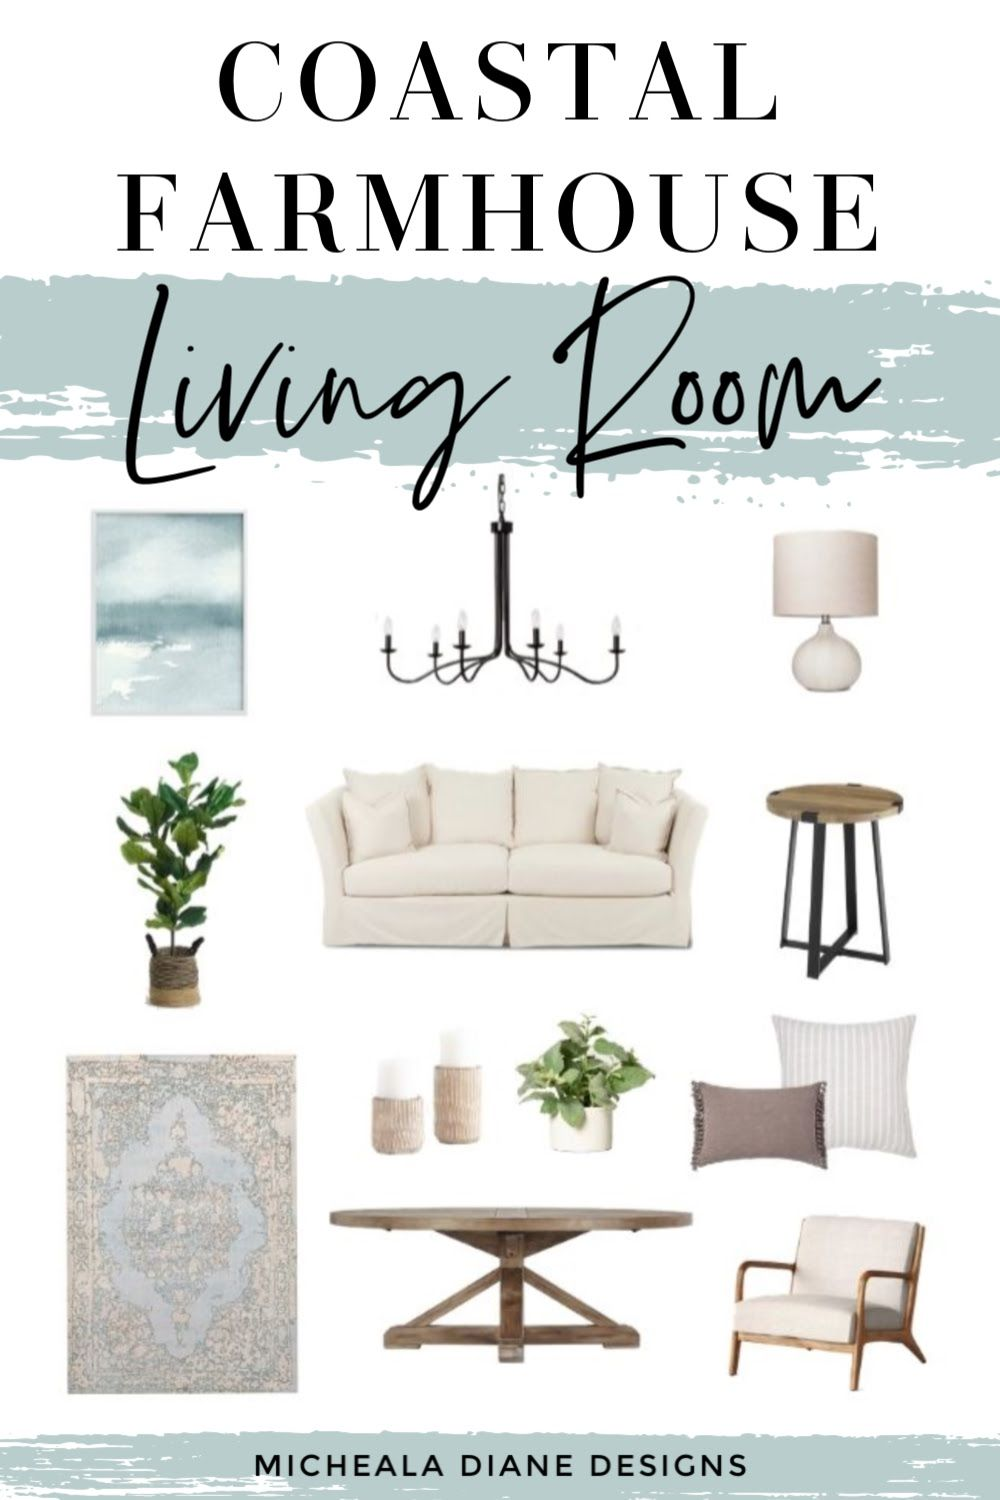 Coastal farmhouse living room decor. Living room style board with all sources linked. #coastalfarmhouse #livingroom #farmhouse